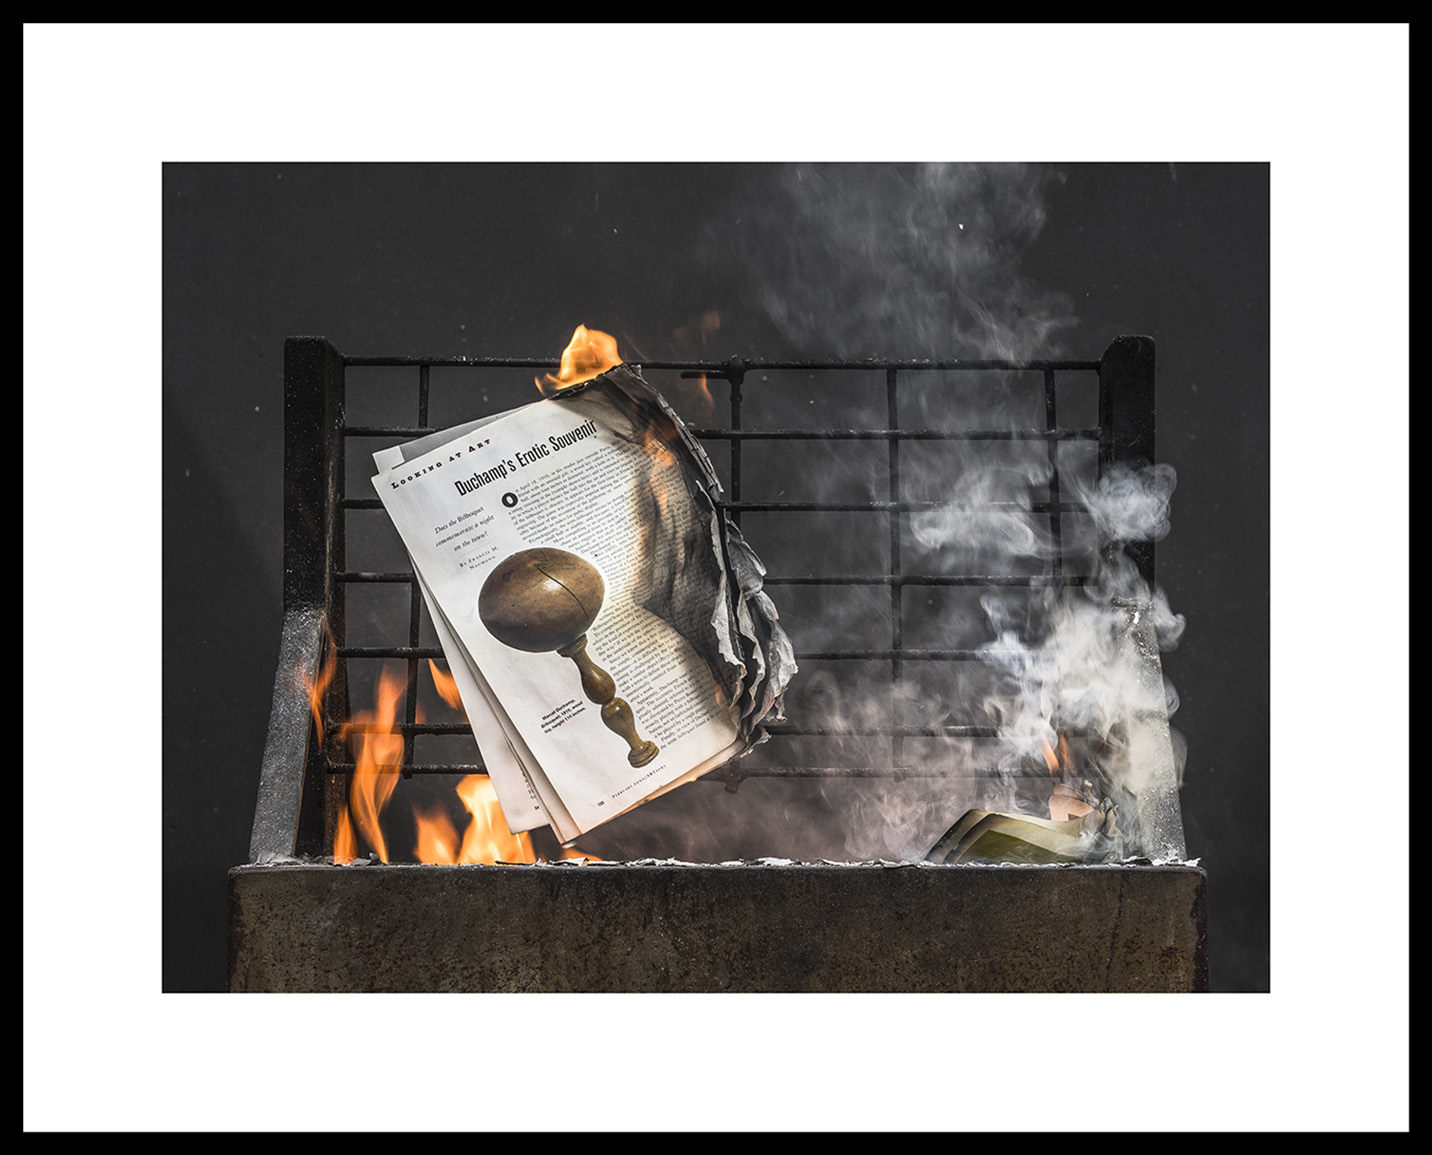 AN Feb 2000 #1545F, 2019     Archival ink jet print on Epson exhibition fiber paper, framed Image: 18x24in, Paper: 24x30in, Frame: 25x31in, Edition of 5 with 2AP